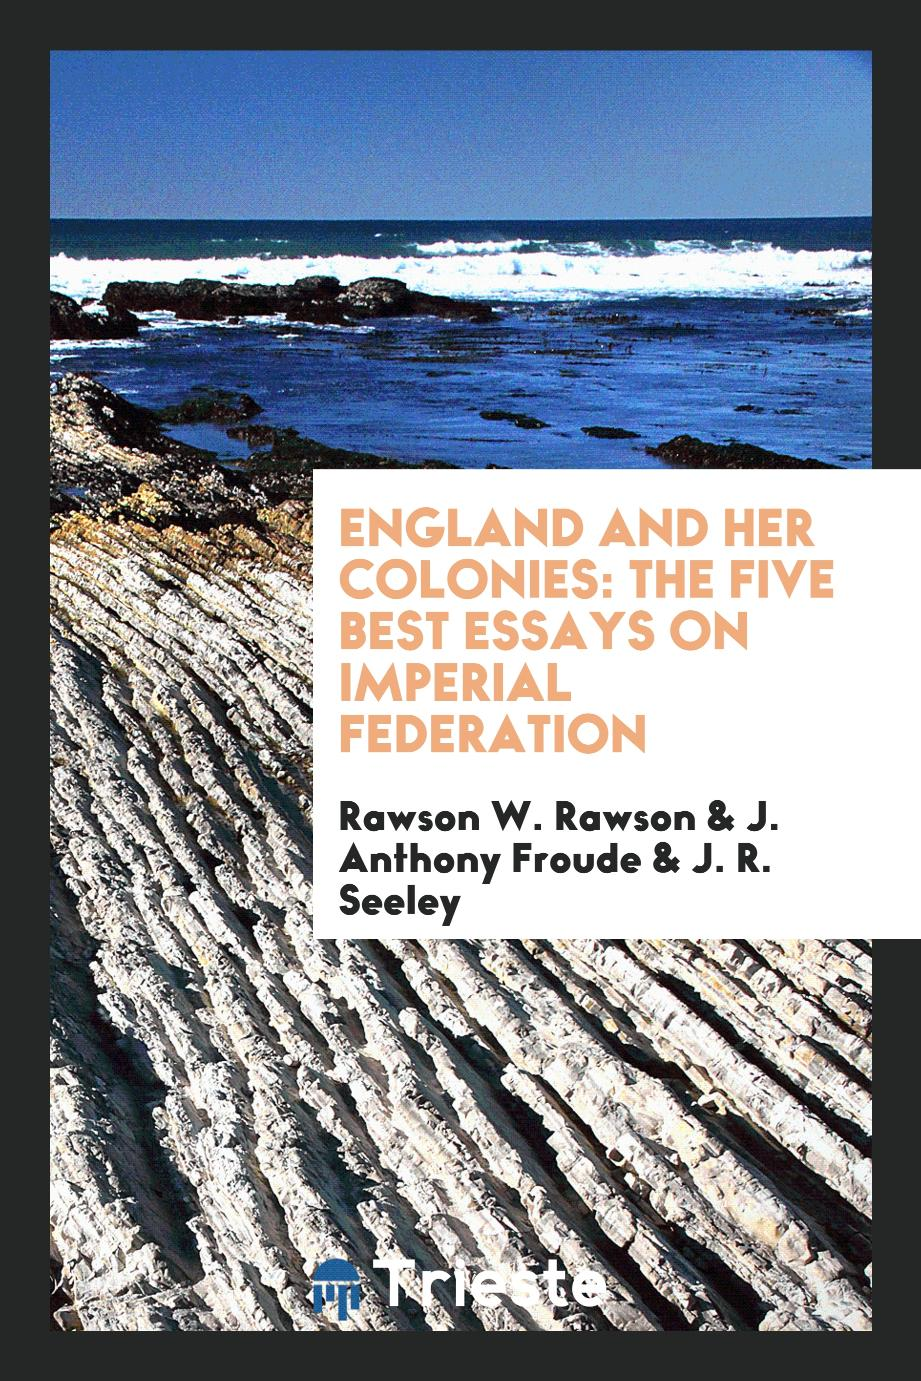 England and Her Colonies: The Five Best Essays on Imperial Federation